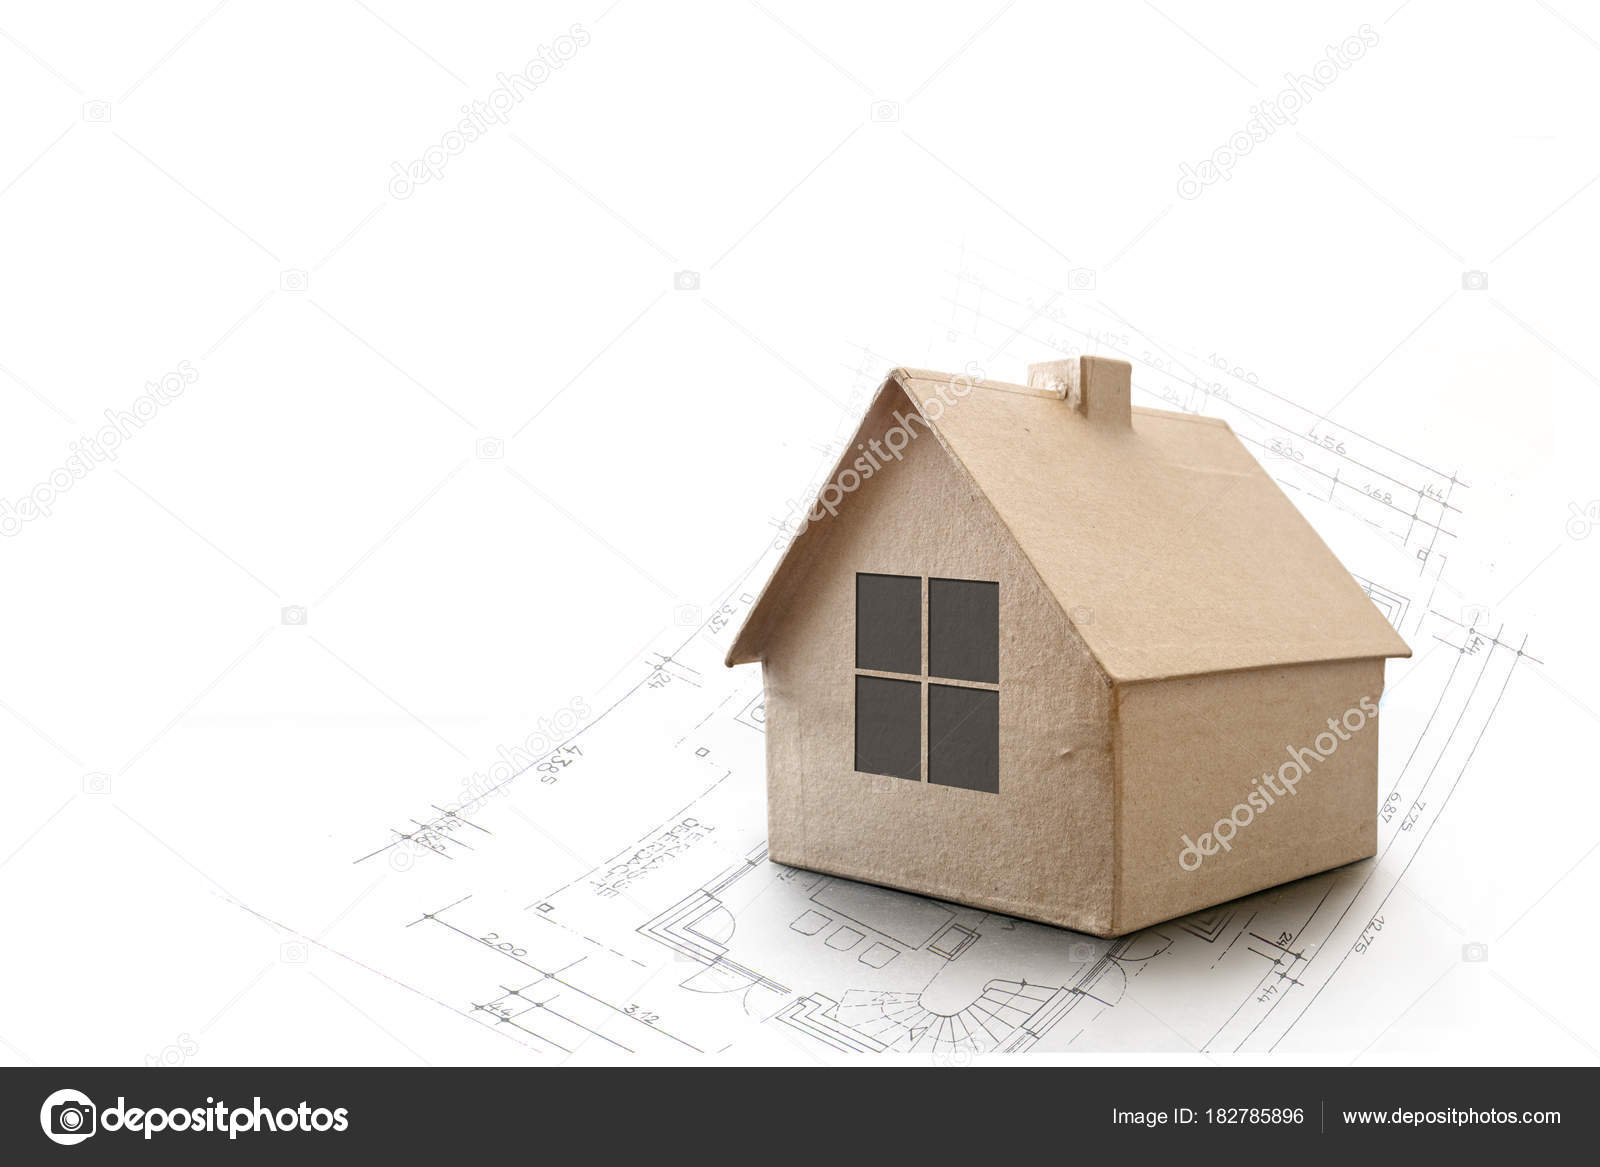 Model House Made Of Cardboard On An Architecture Plan